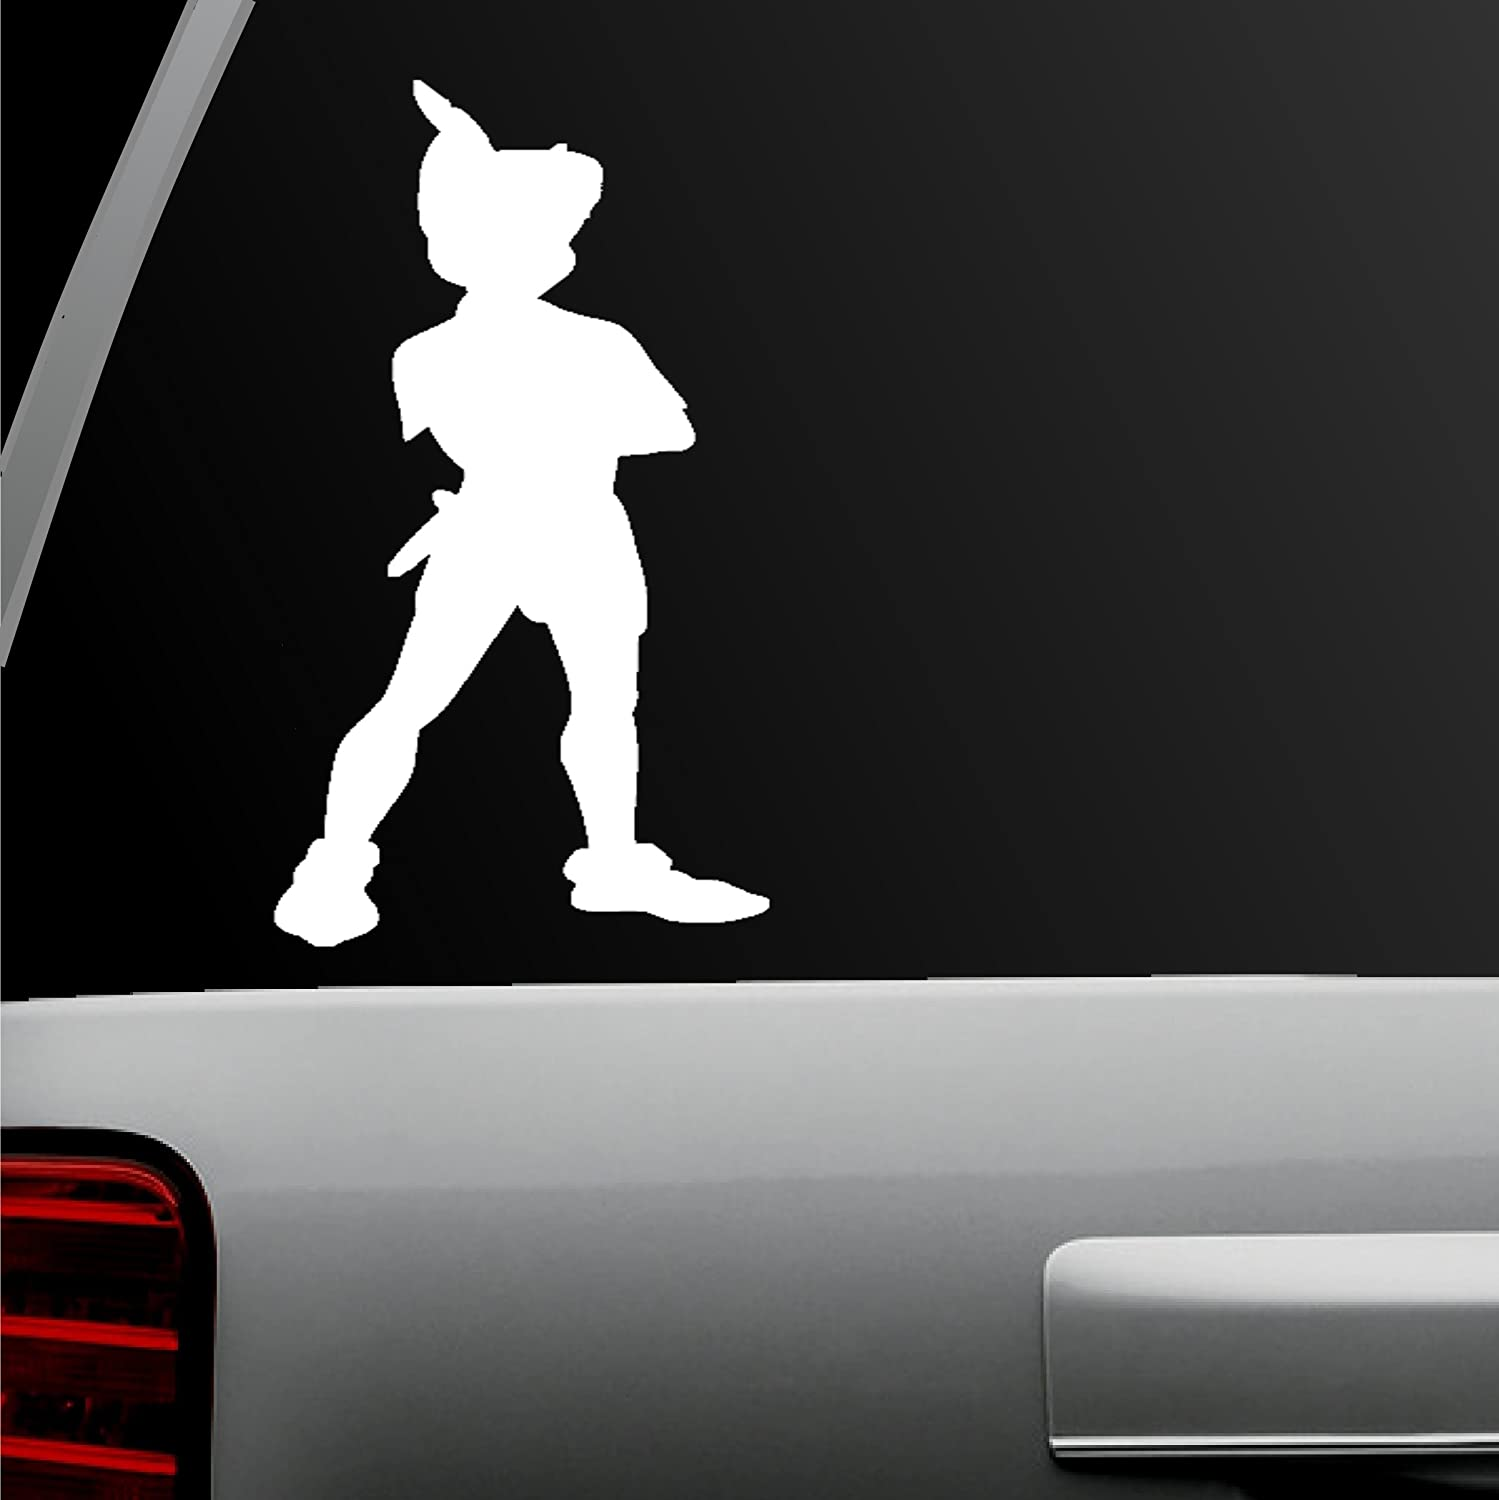 amazon com auto sticker auto decal white mickey mouse and amazon com auto sticker auto decal white mickey mouse and minnie mouse combo window sticker for car truck motorcycle laptop ipad wall mickey